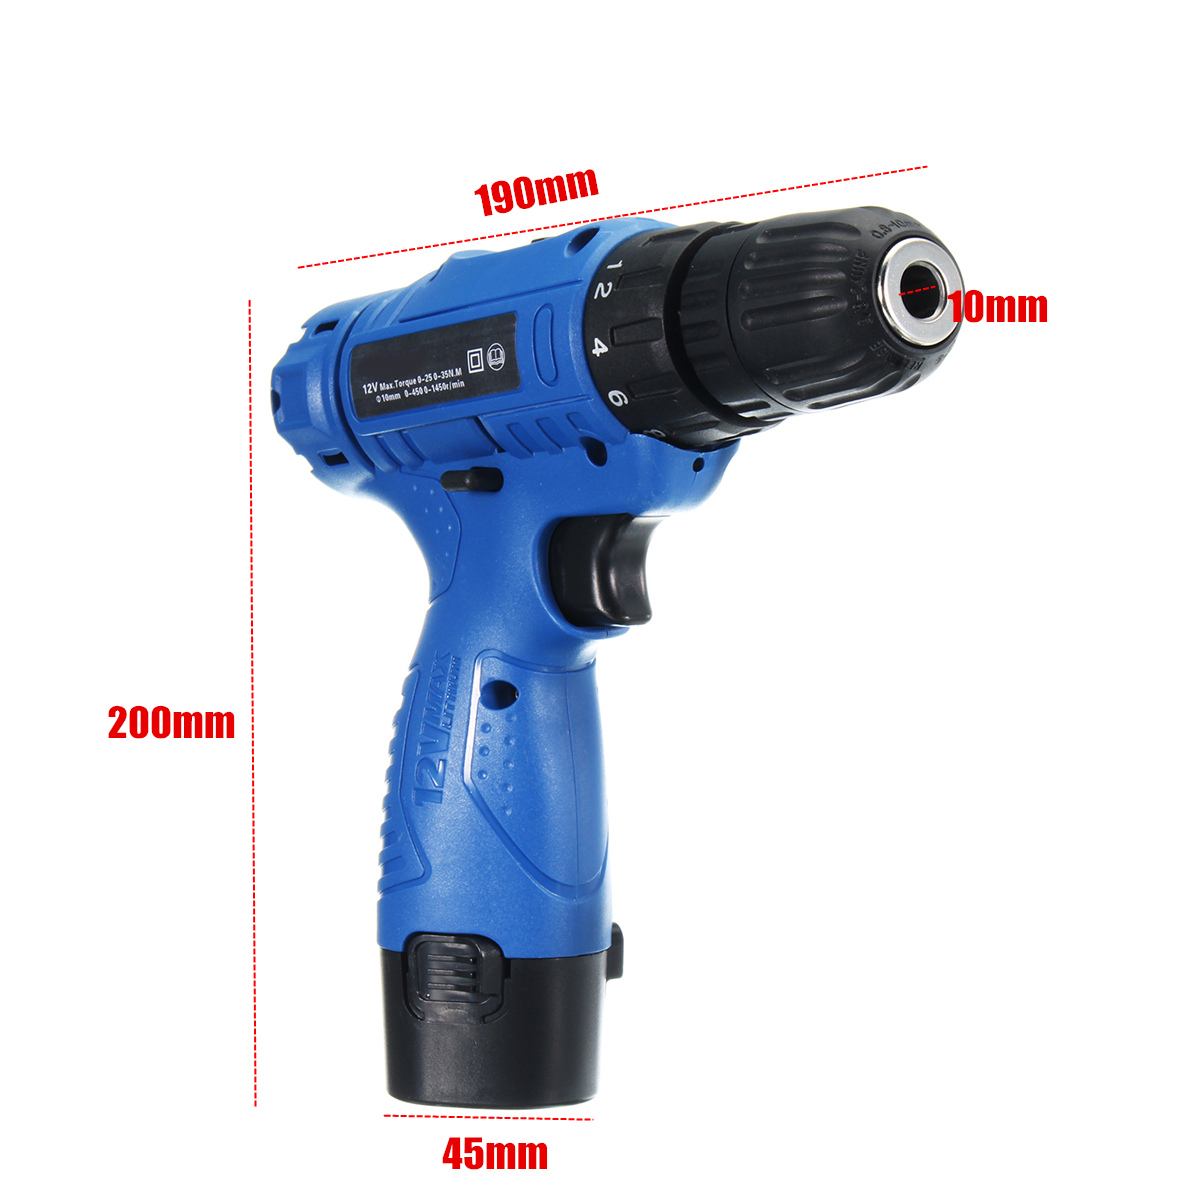 12V Rechargeable Cordless Drill Lithium-Ion Battery Electric Screwdriver Power Drill